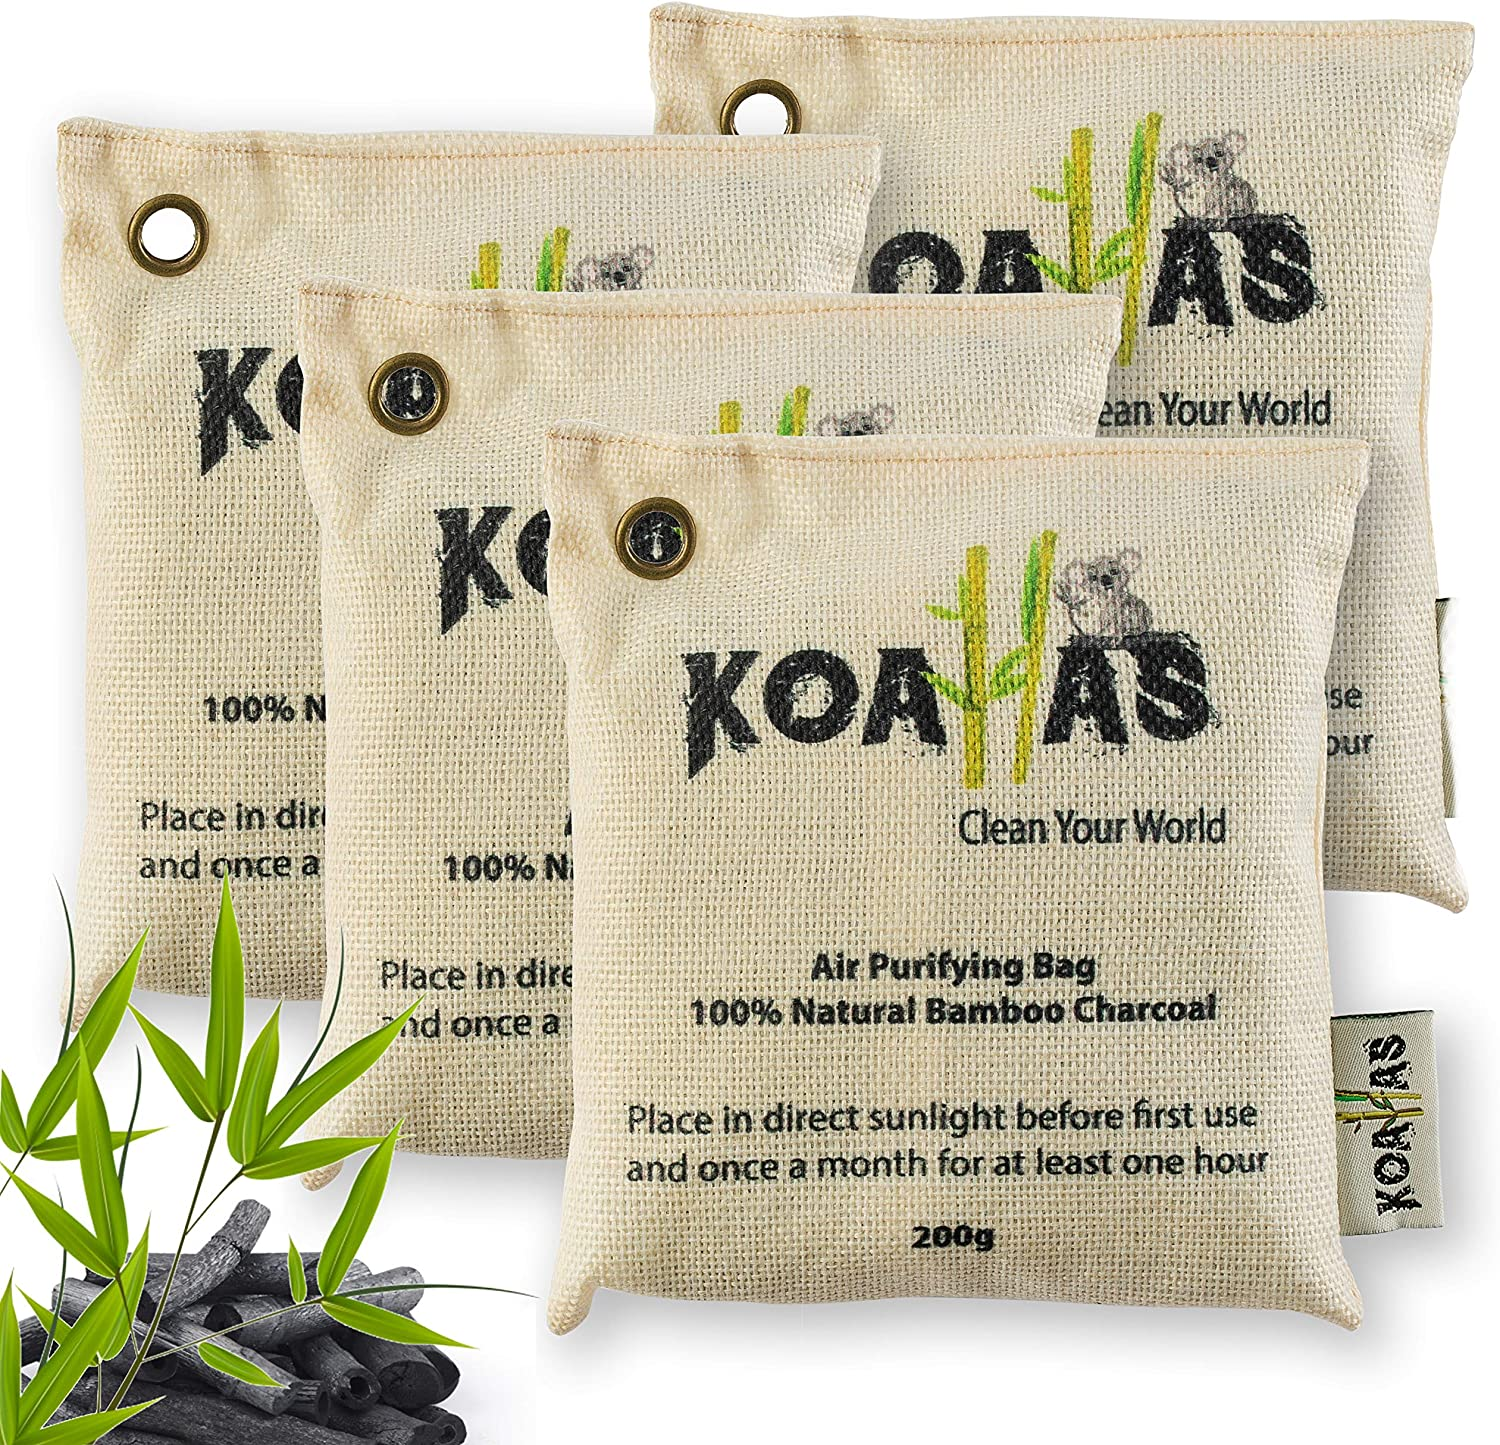 Bamboo Charcoal Air Purifying Bags - air fresheners for home, odor absorbers for home, house Car, charcoal bags odor absorber, Closet deodorizer freshener, refrigerator odor eliminator 4x200 by Koalla